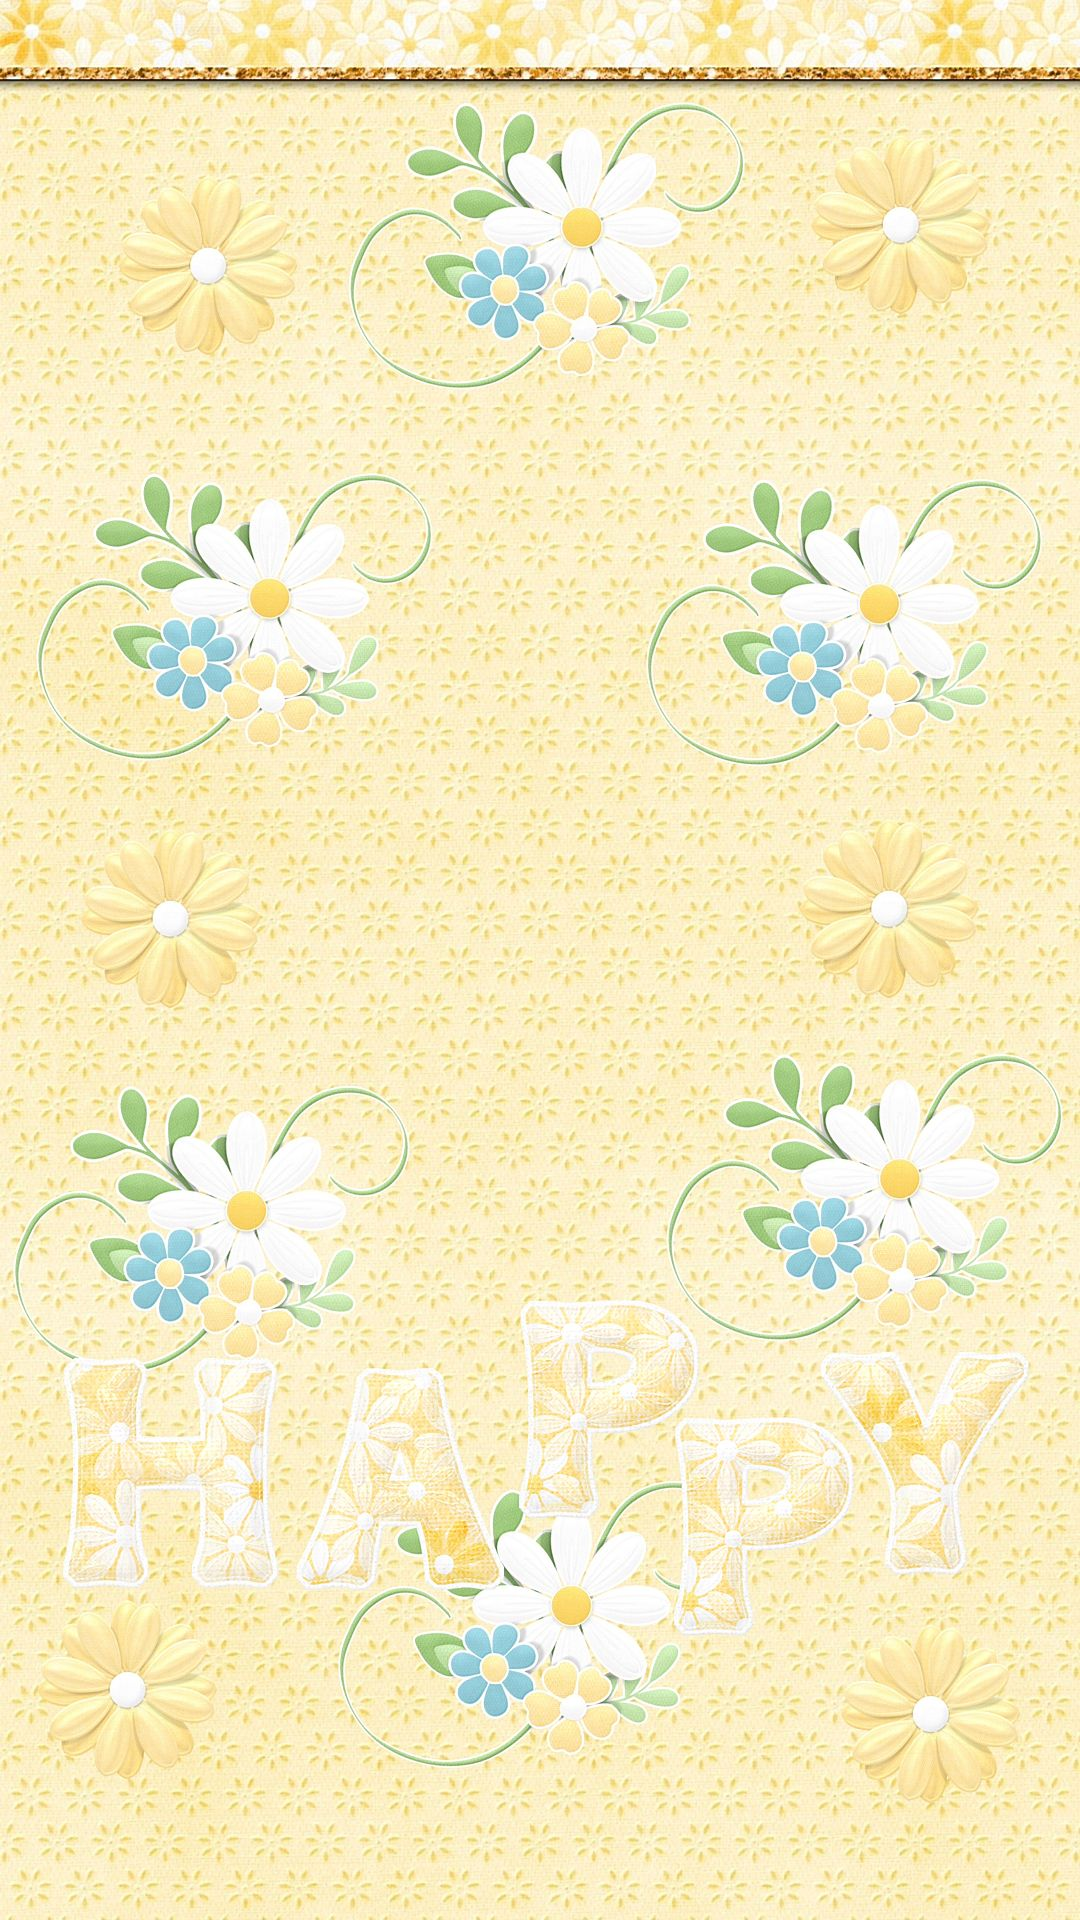 reeseybelle tjn Abstract iphone wallpaper, Daisy